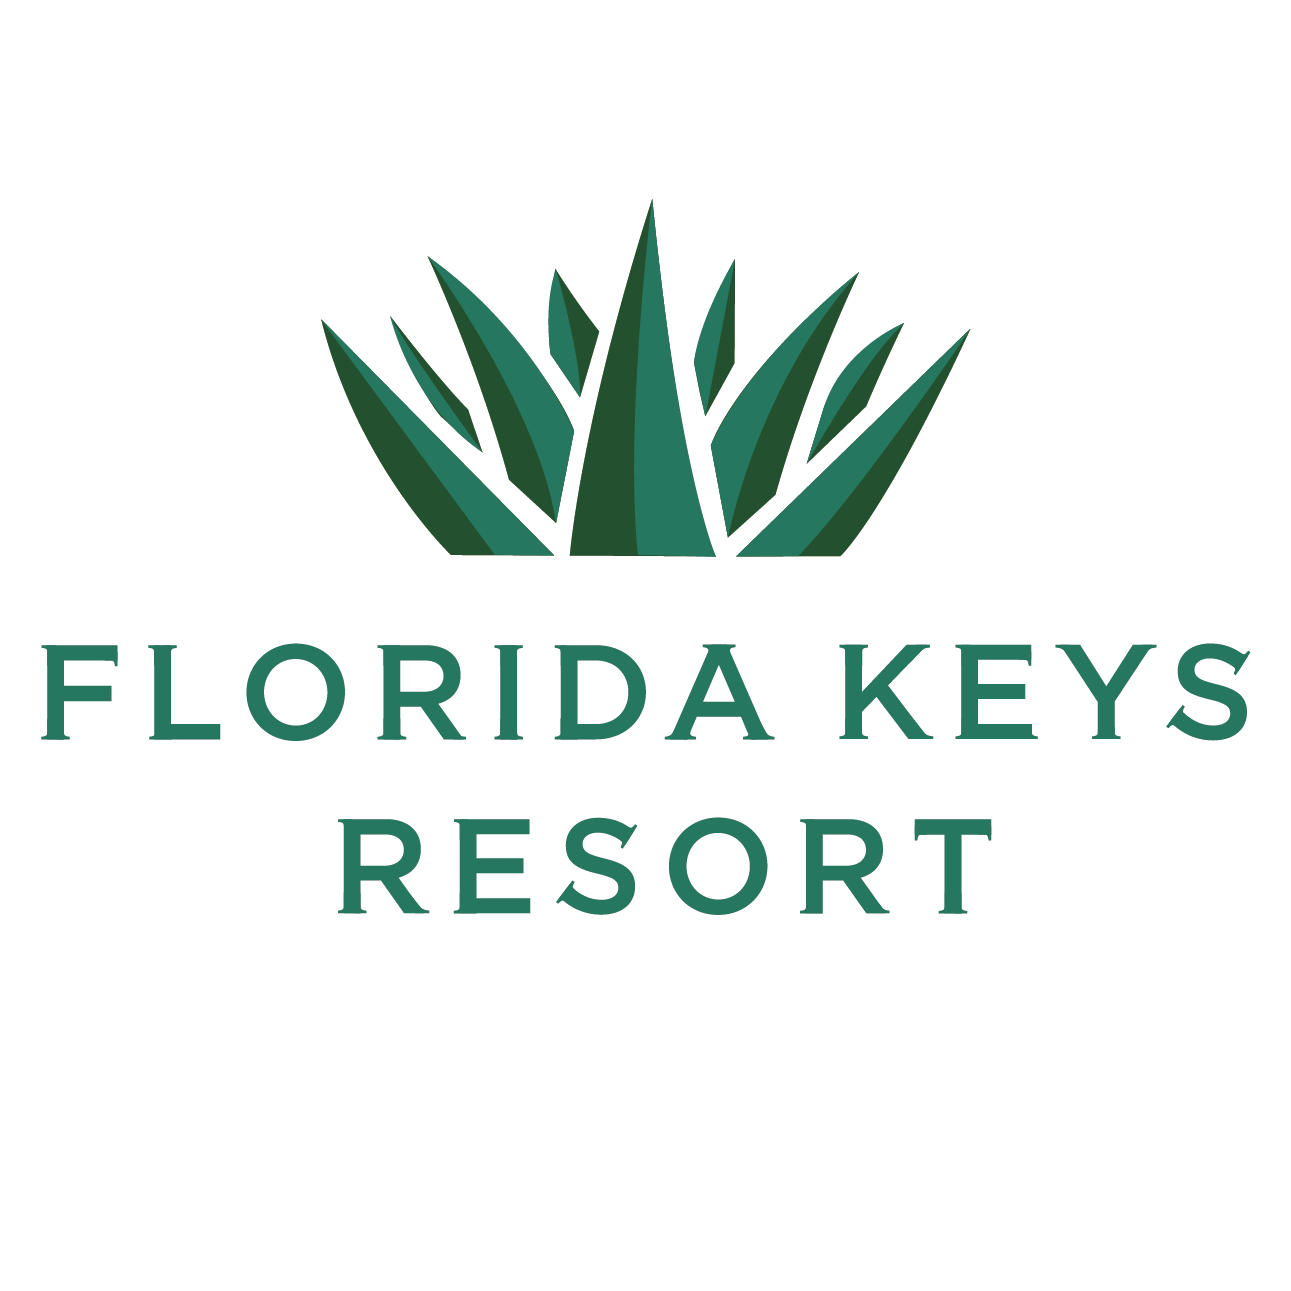 Florida Keys Resort